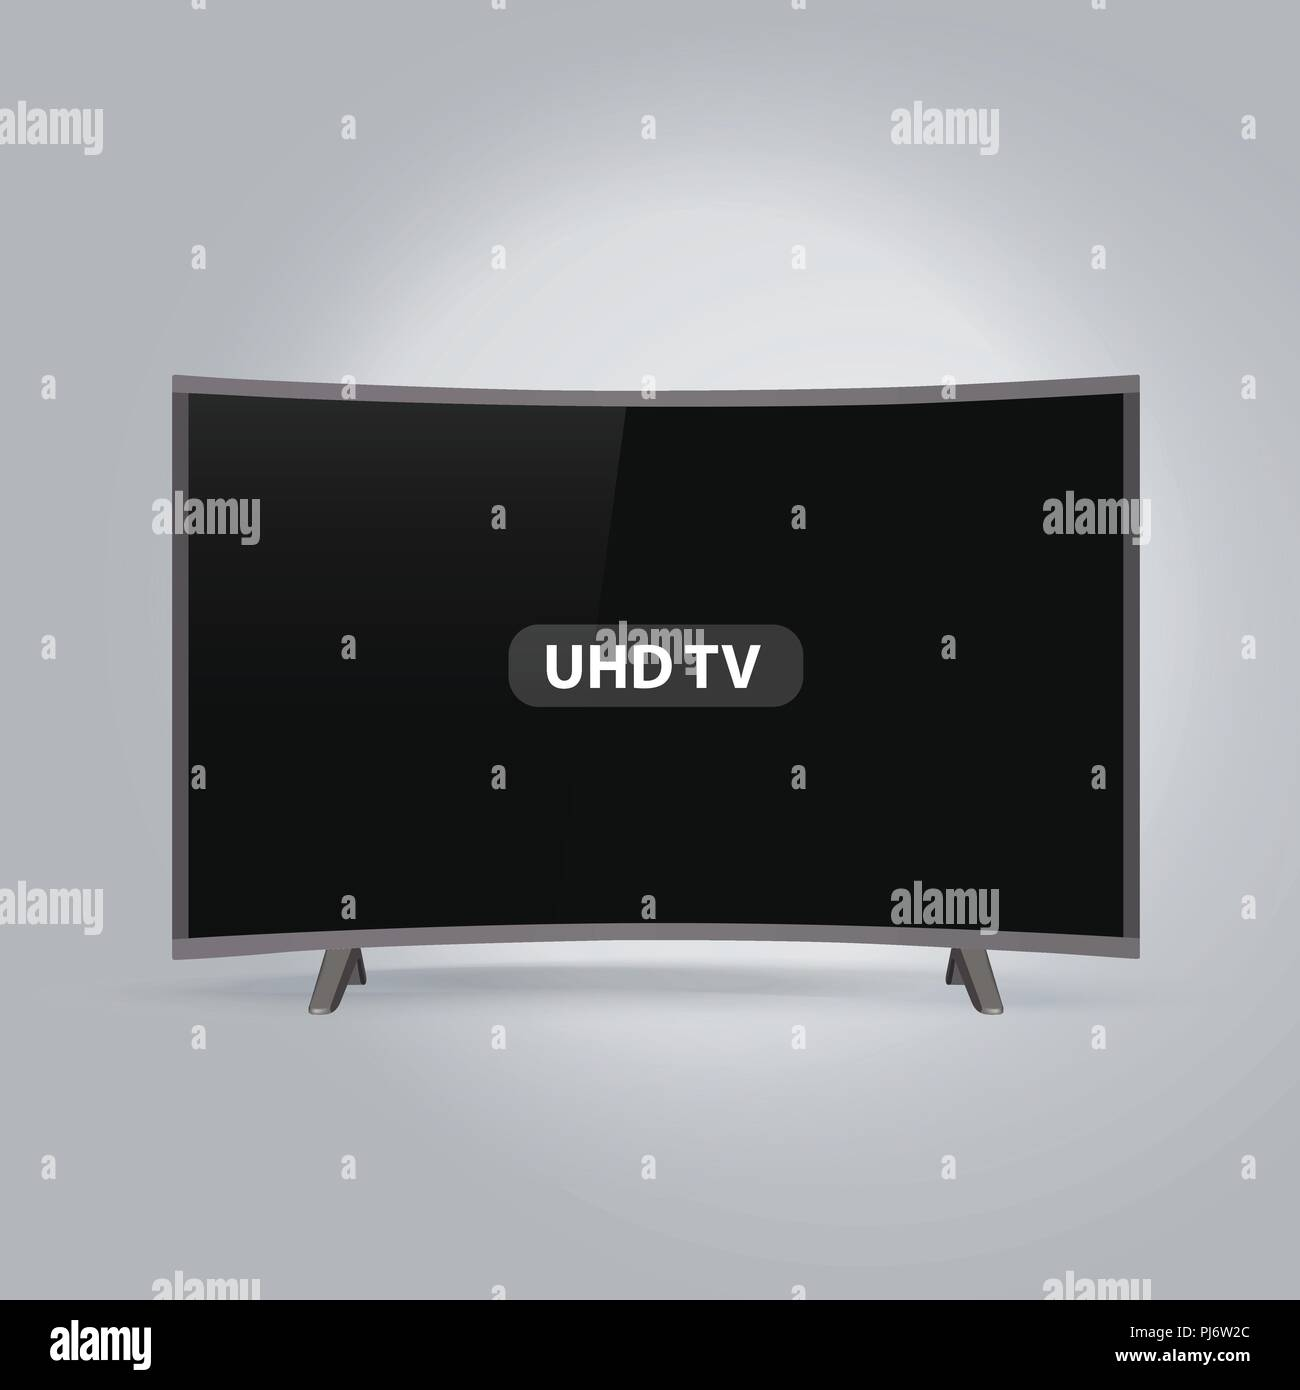 Curved smart LED UHD TV series isolated on gray background - Stock Image